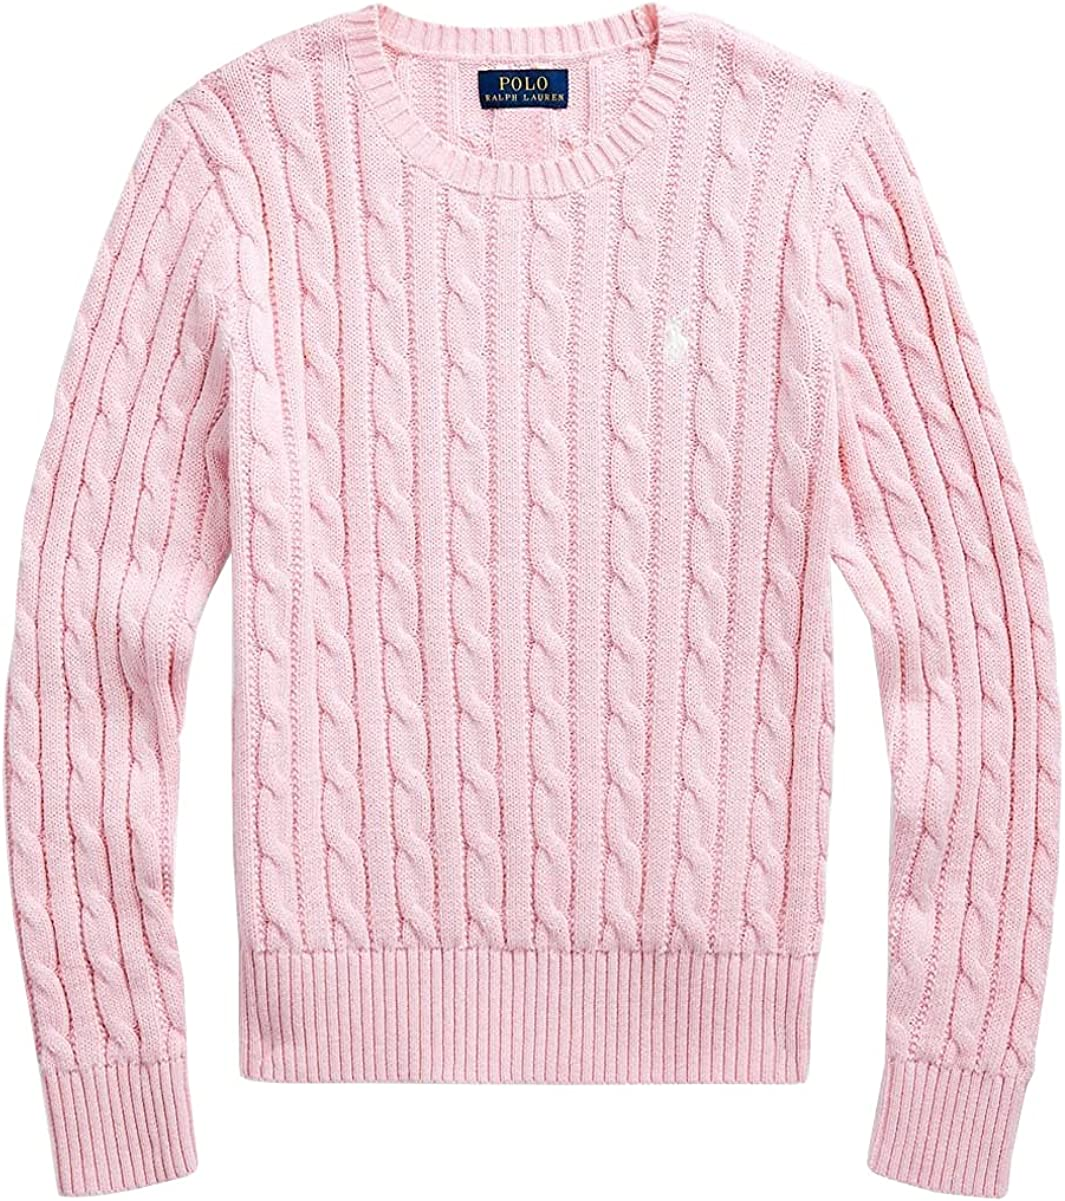 Polo Ralph Lauren Girl's Cable Knit Sweater